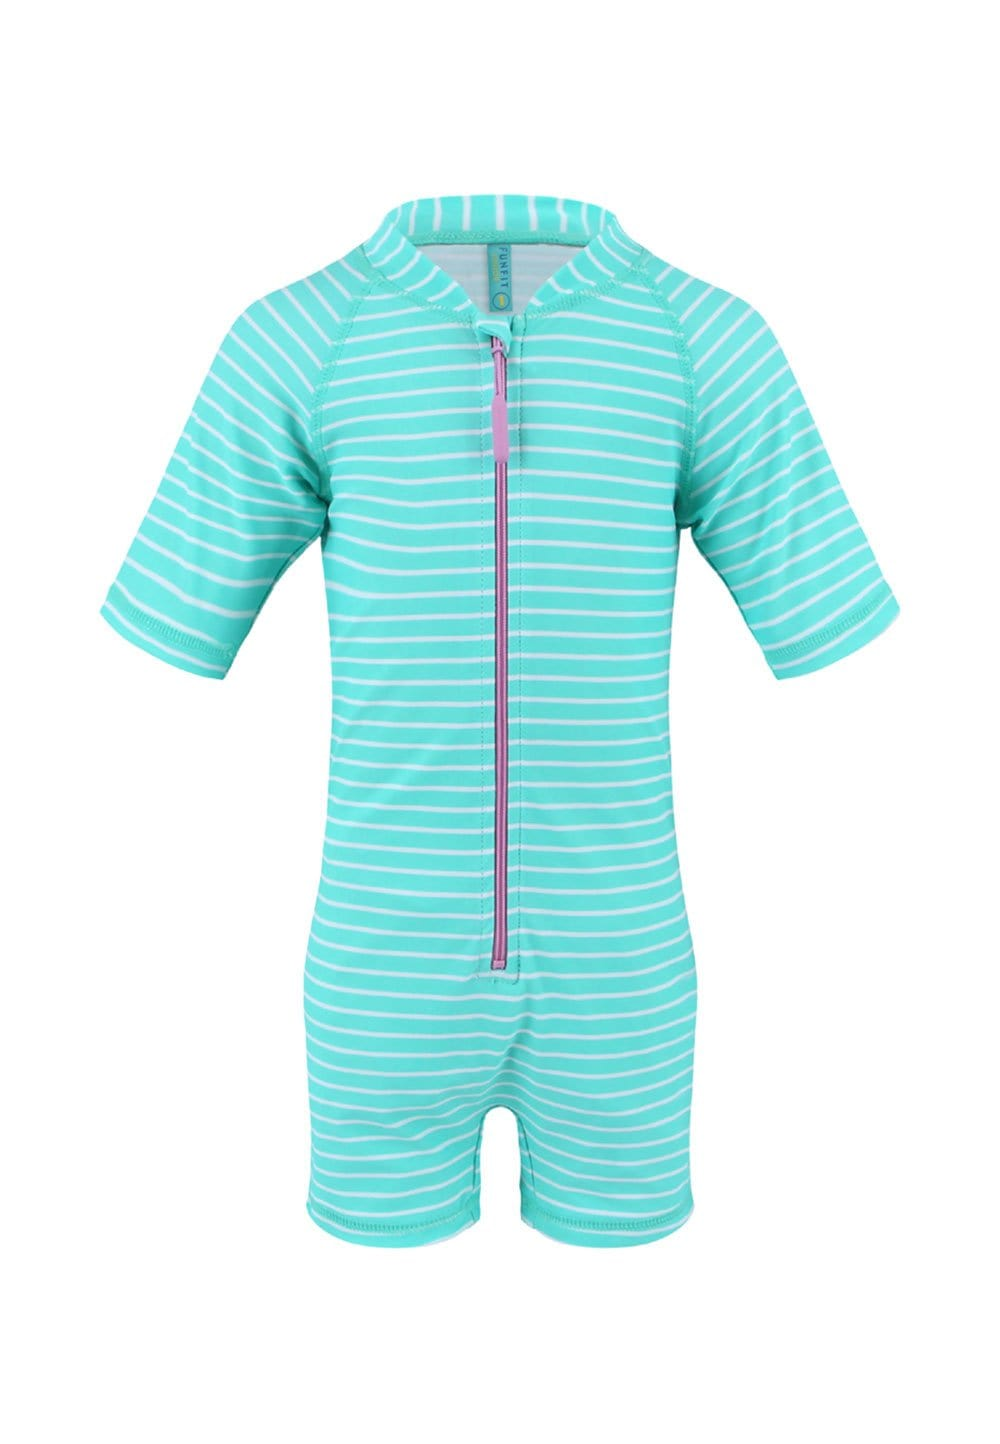 FUNFIT UPF50+ Junior Sunsuit Half Sleeve (Unisex) in Bubblegum Print